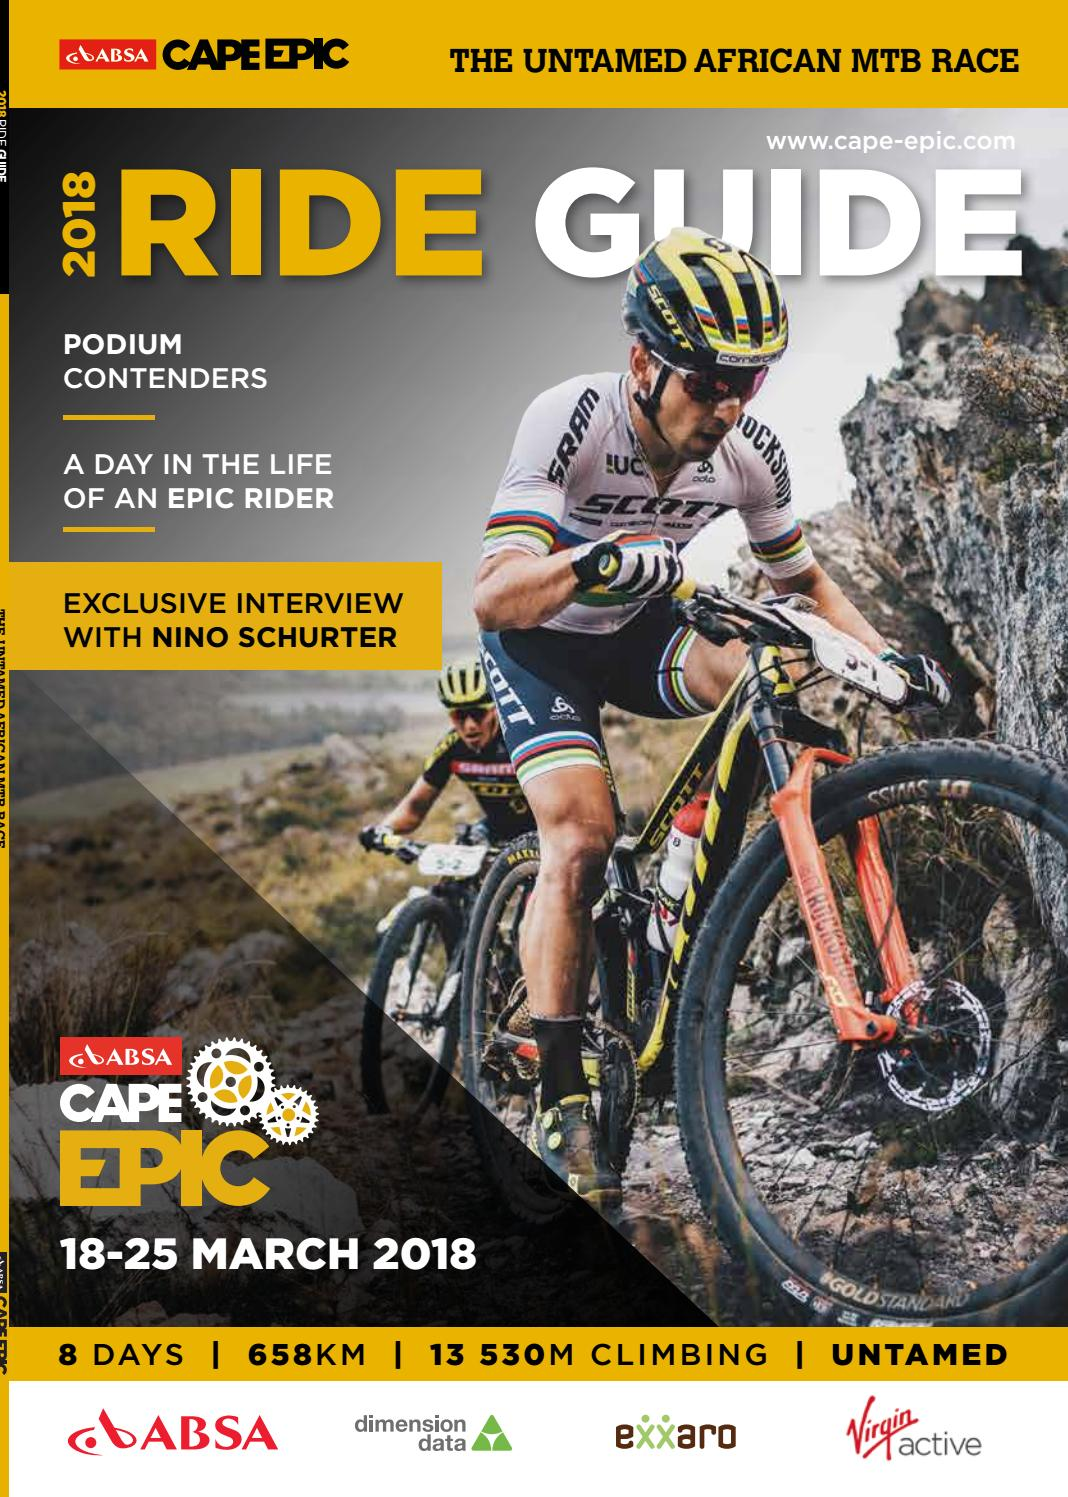 Amy Benkenstein absa cape epic ride guide 2018absa cape epic - issuu